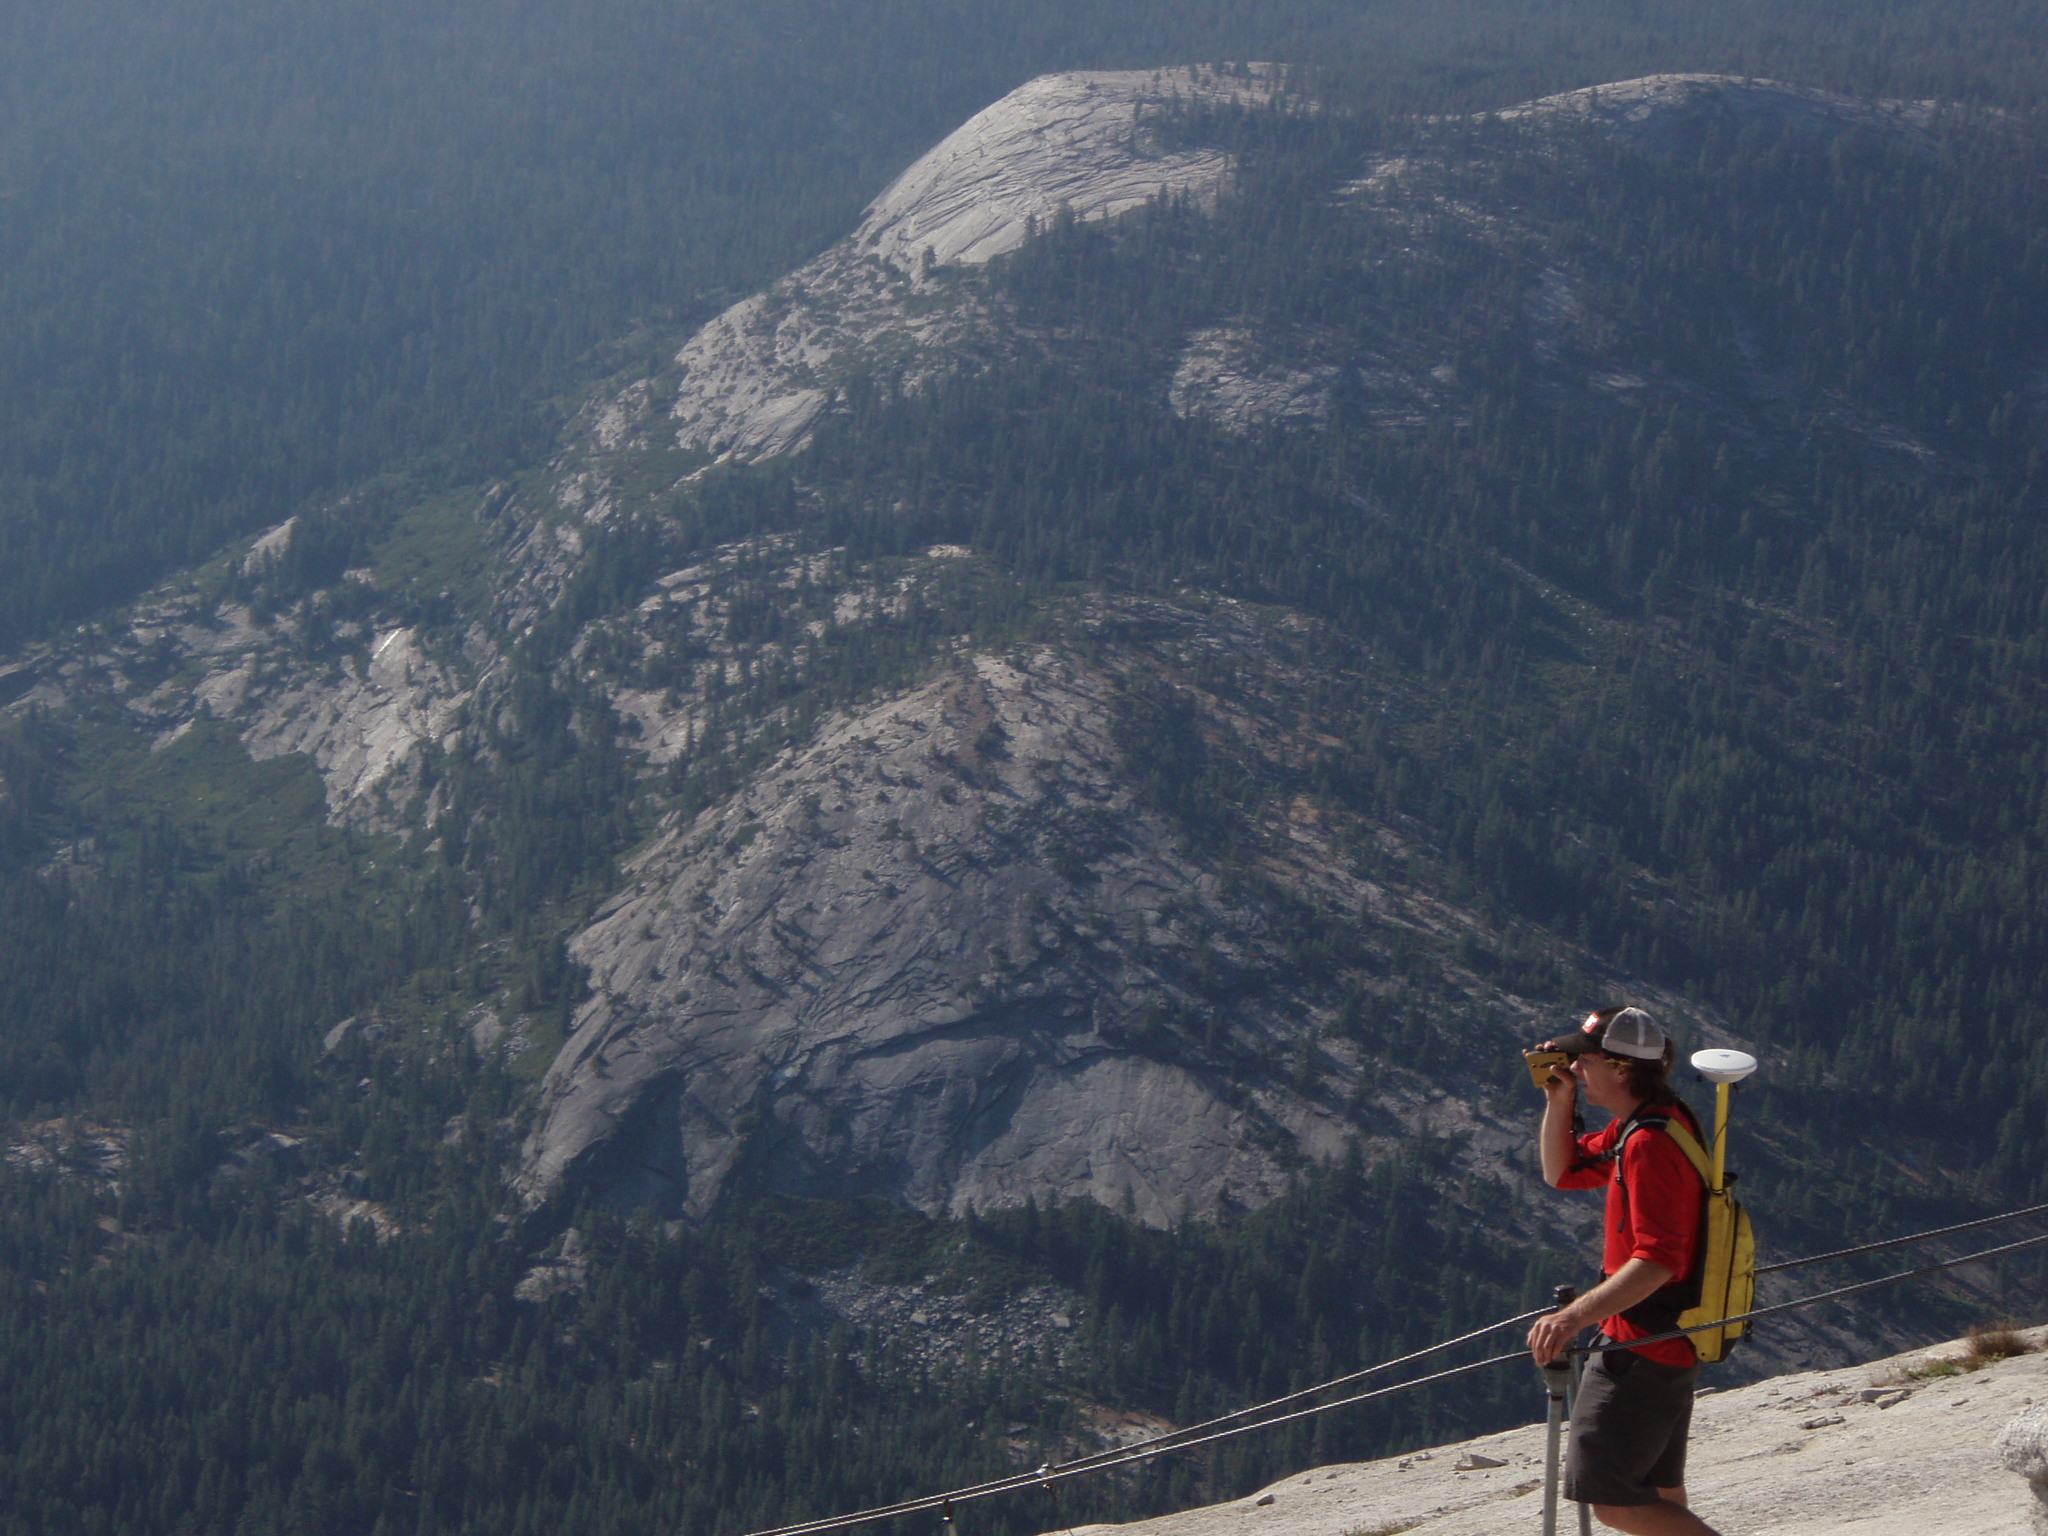 Yosemite Wilderness Character and Safety Study